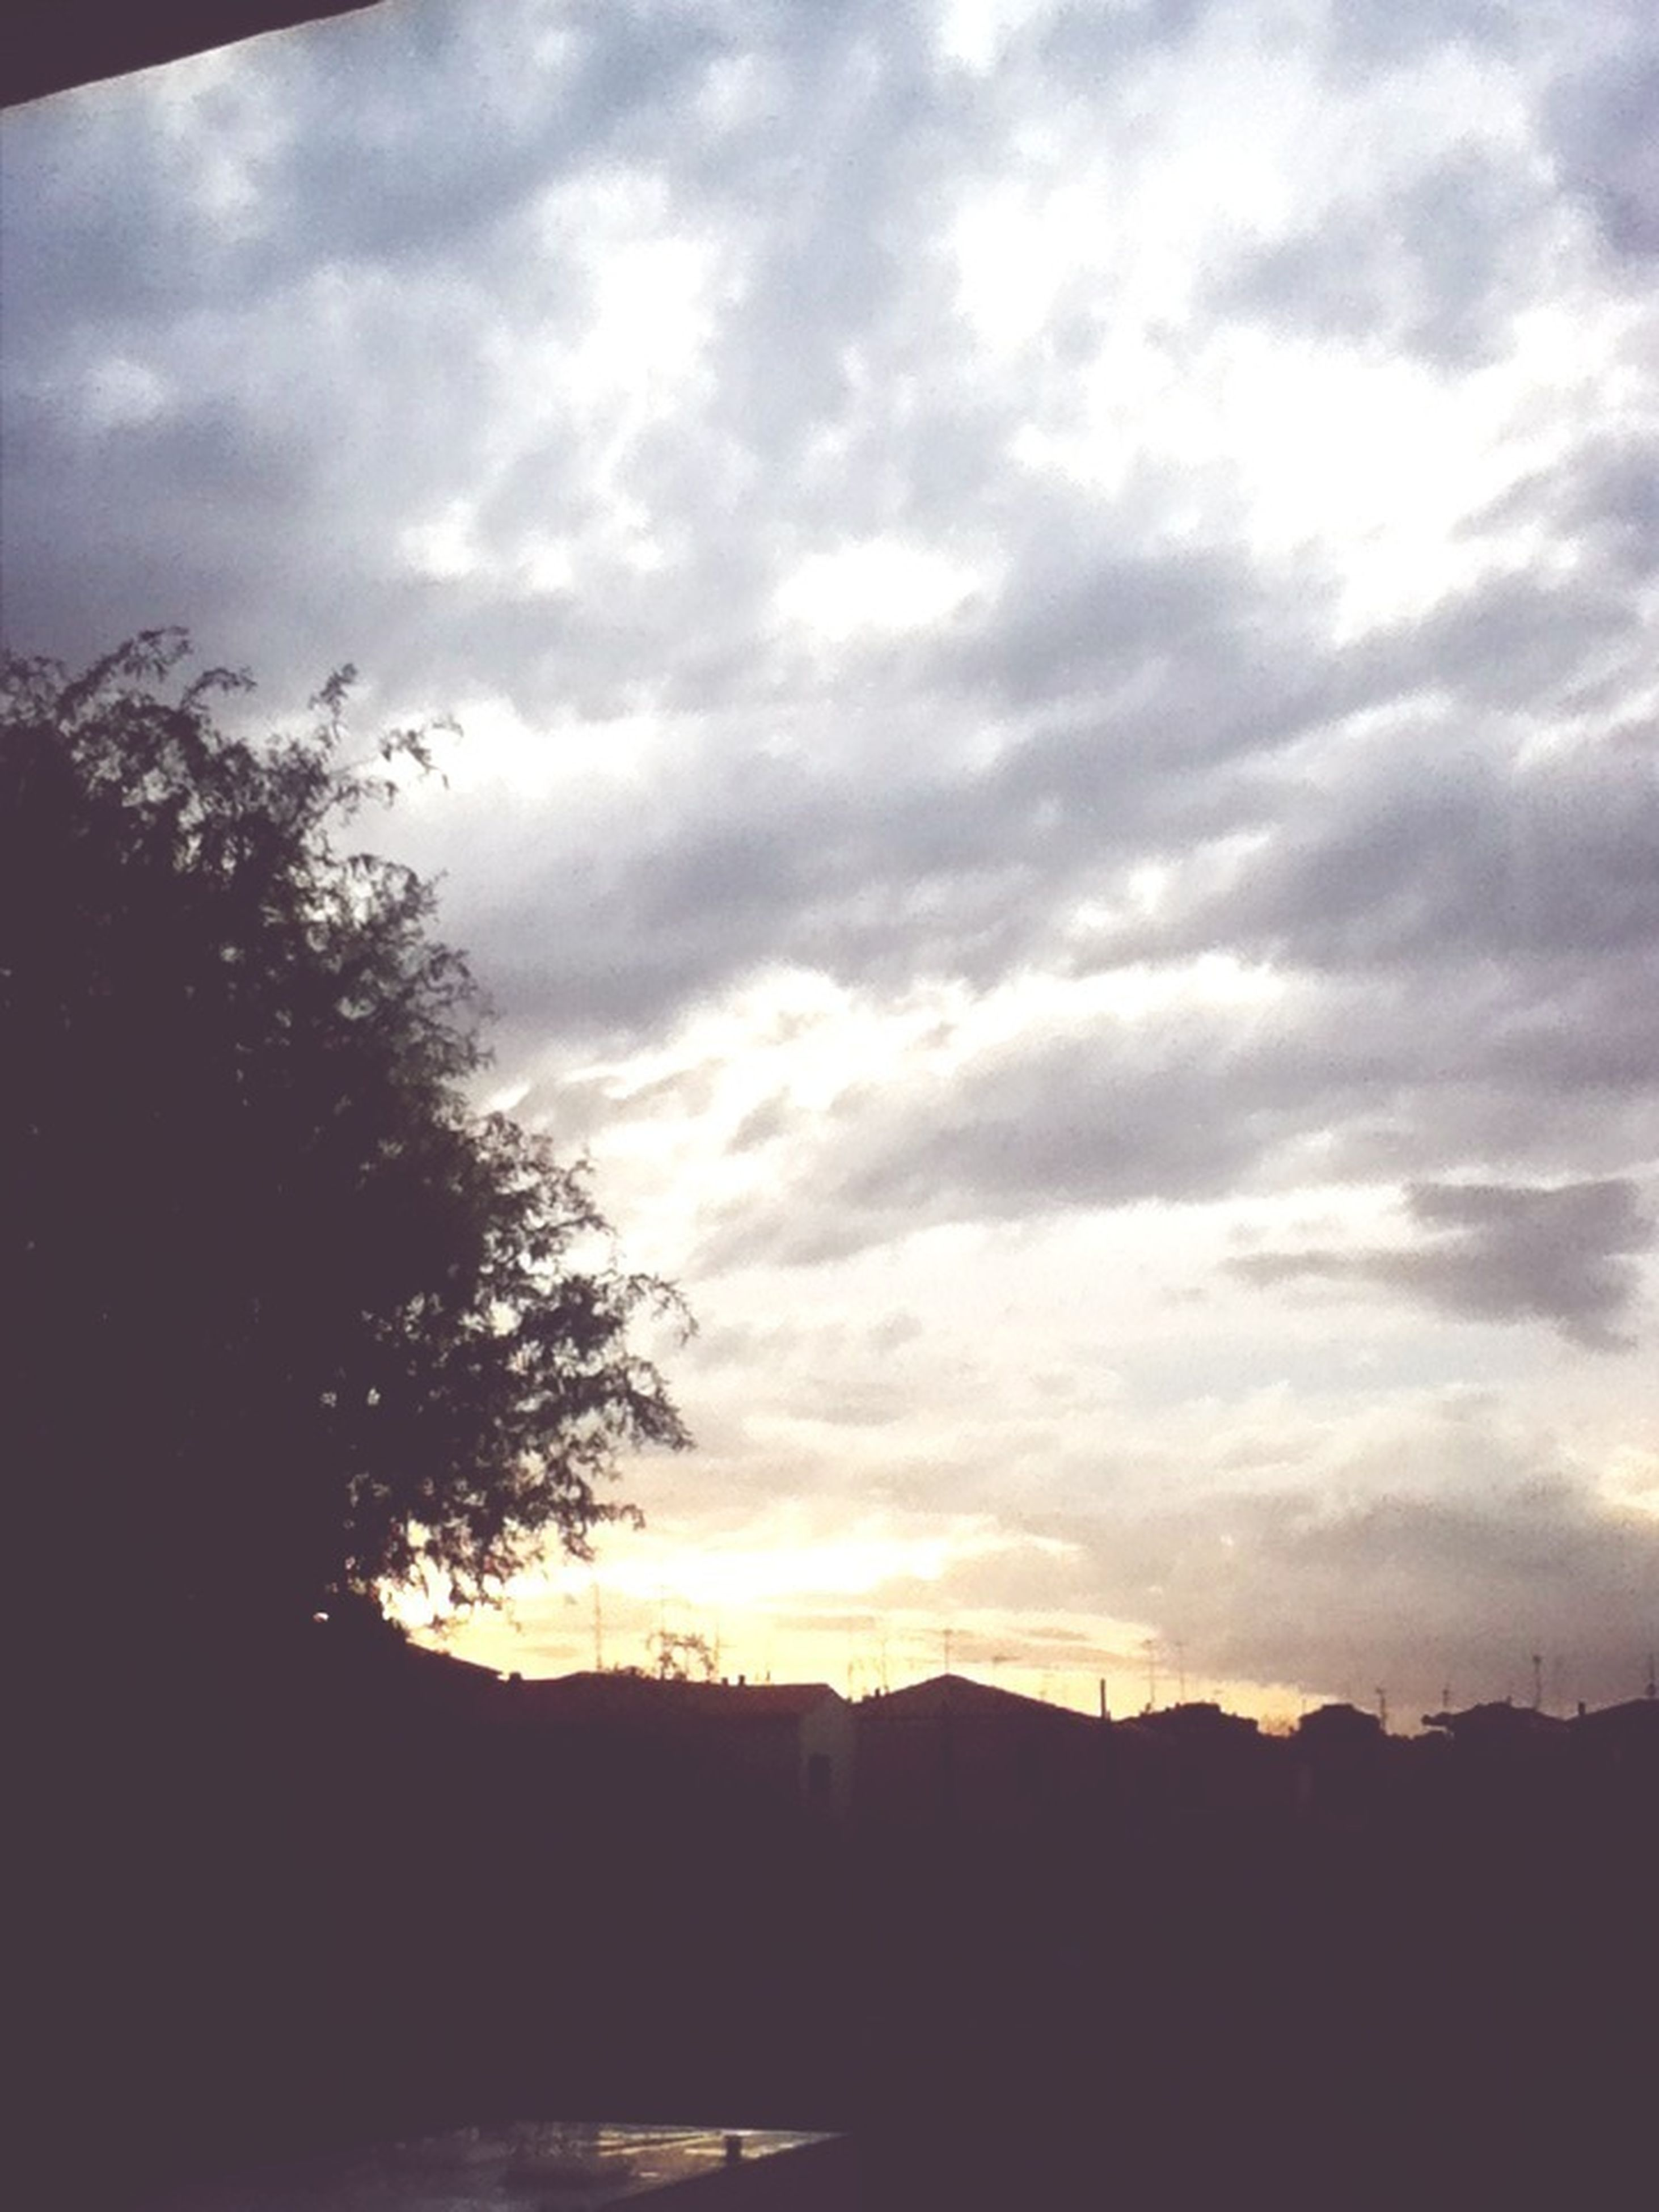 silhouette, sky, sunset, cloud - sky, tree, cloudy, tranquility, scenics, tranquil scene, beauty in nature, cloud, nature, dark, landscape, dusk, outline, outdoors, idyllic, low angle view, overcast